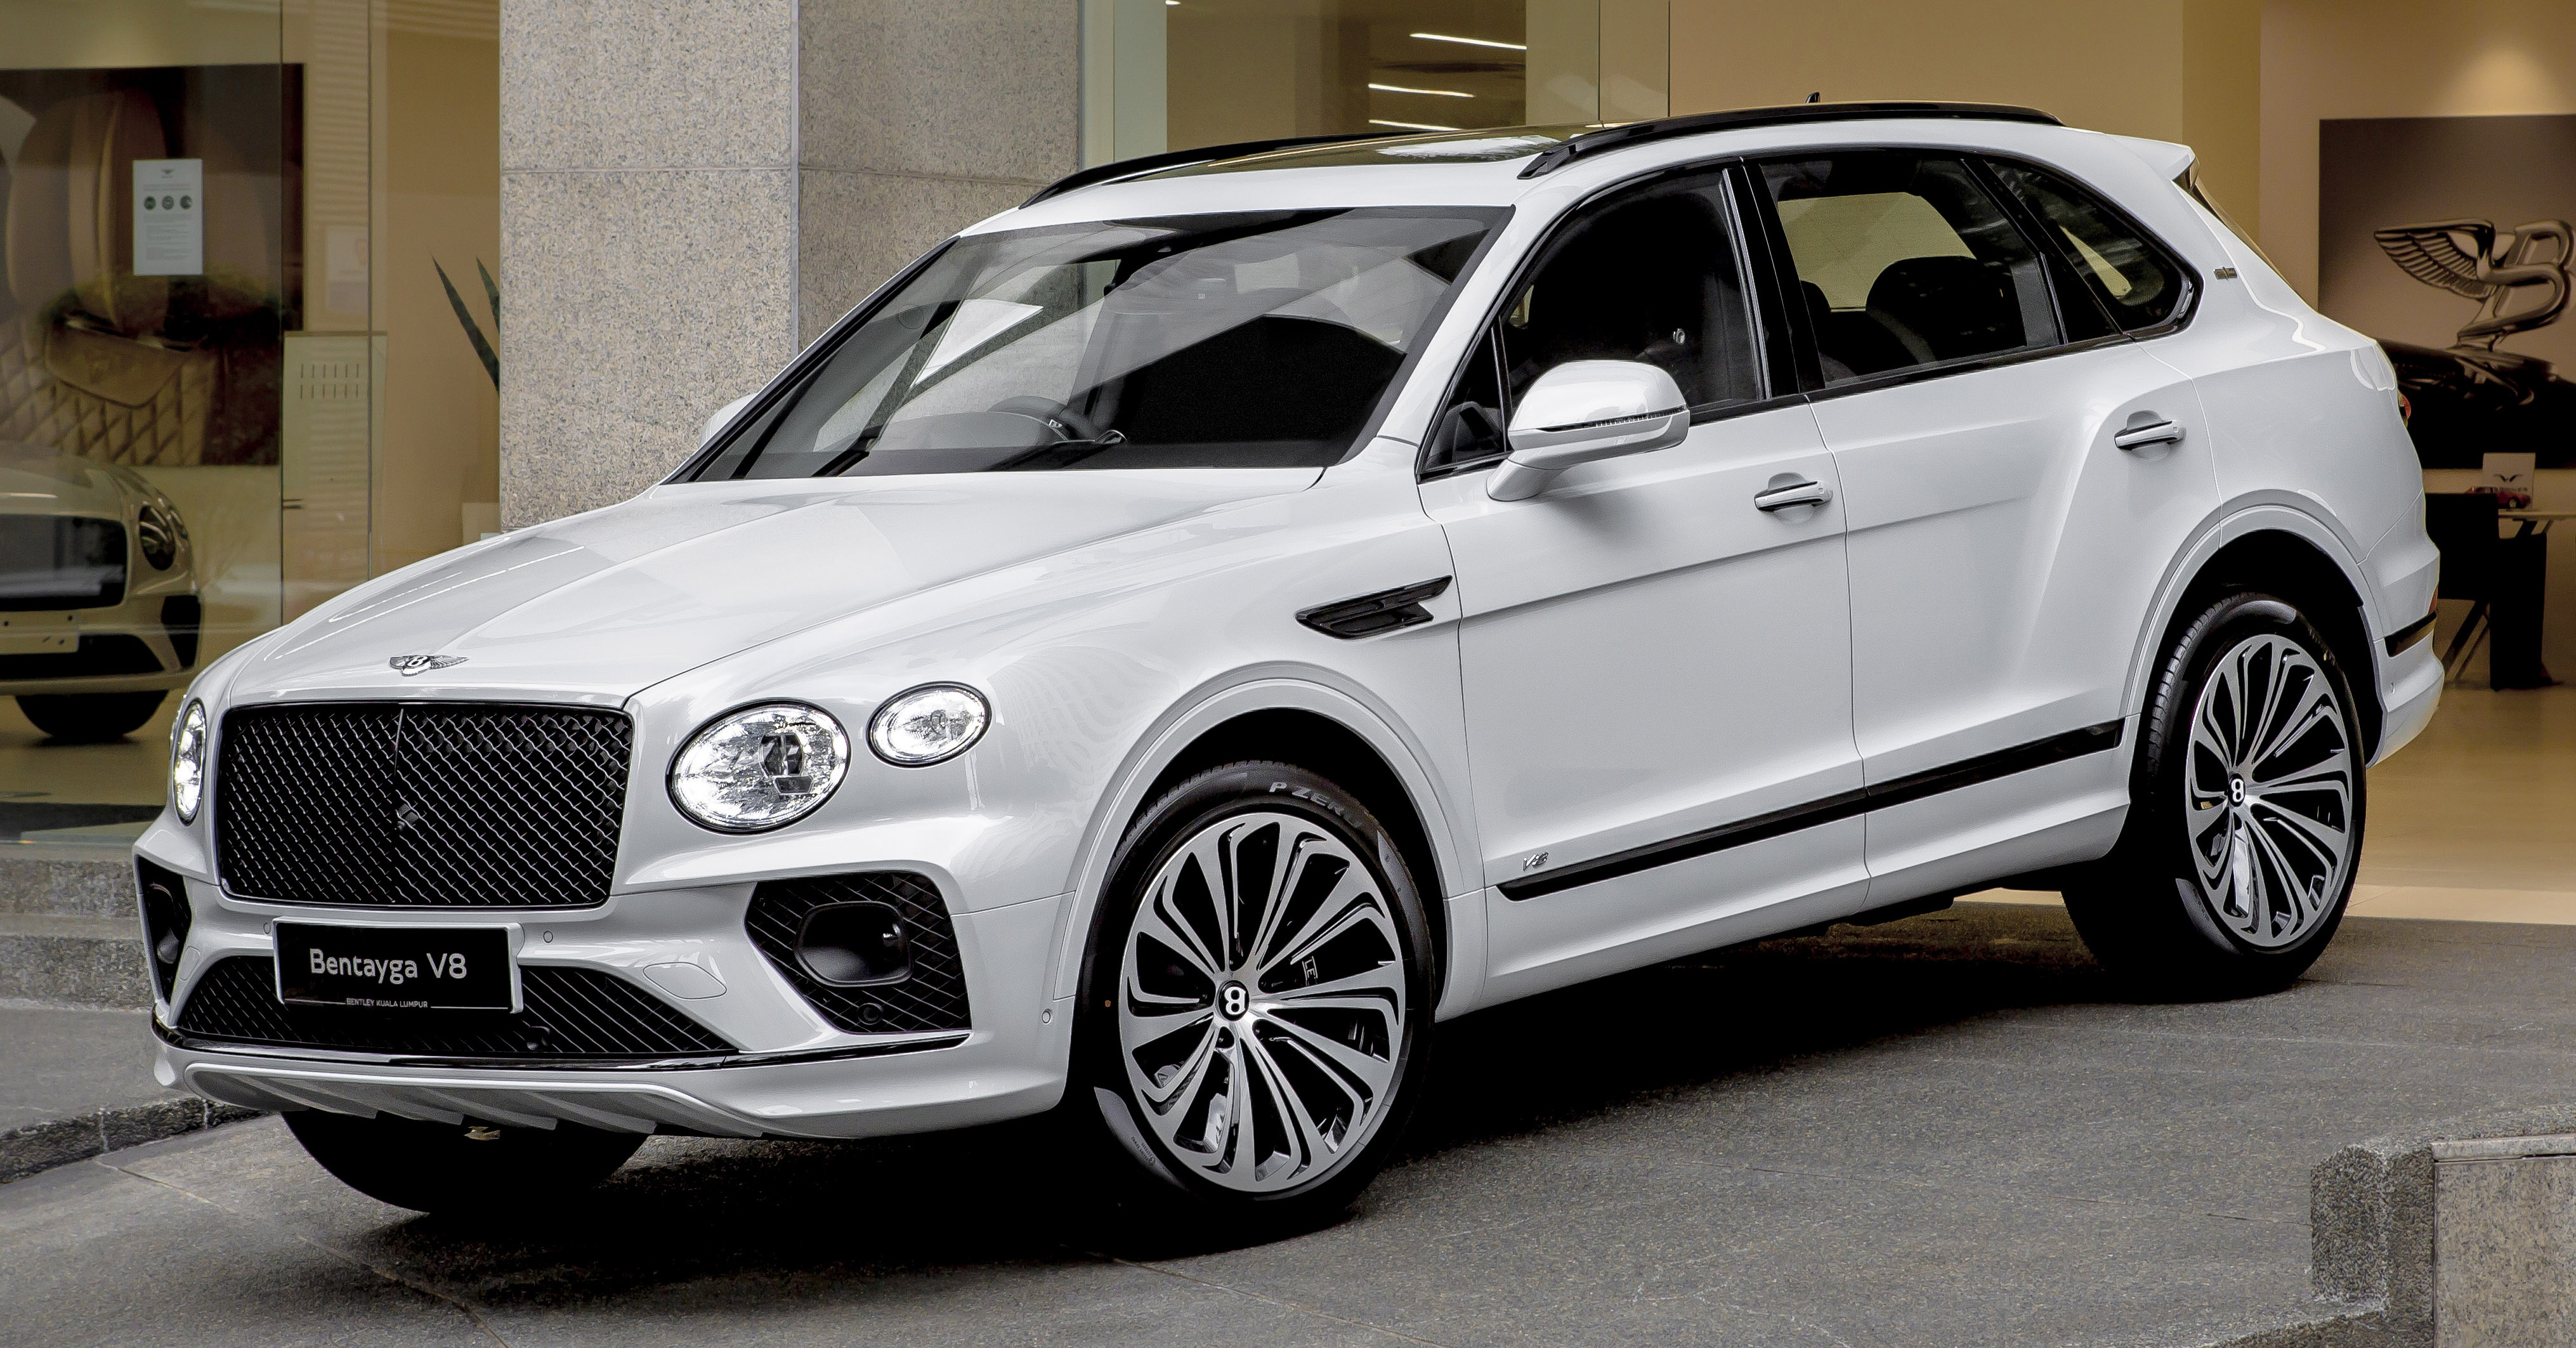 Bentley Bentayga Facelift Now Available In Malaysia 550 Ps V8 From Rm744k First Edition From Rm935k Paultan Org